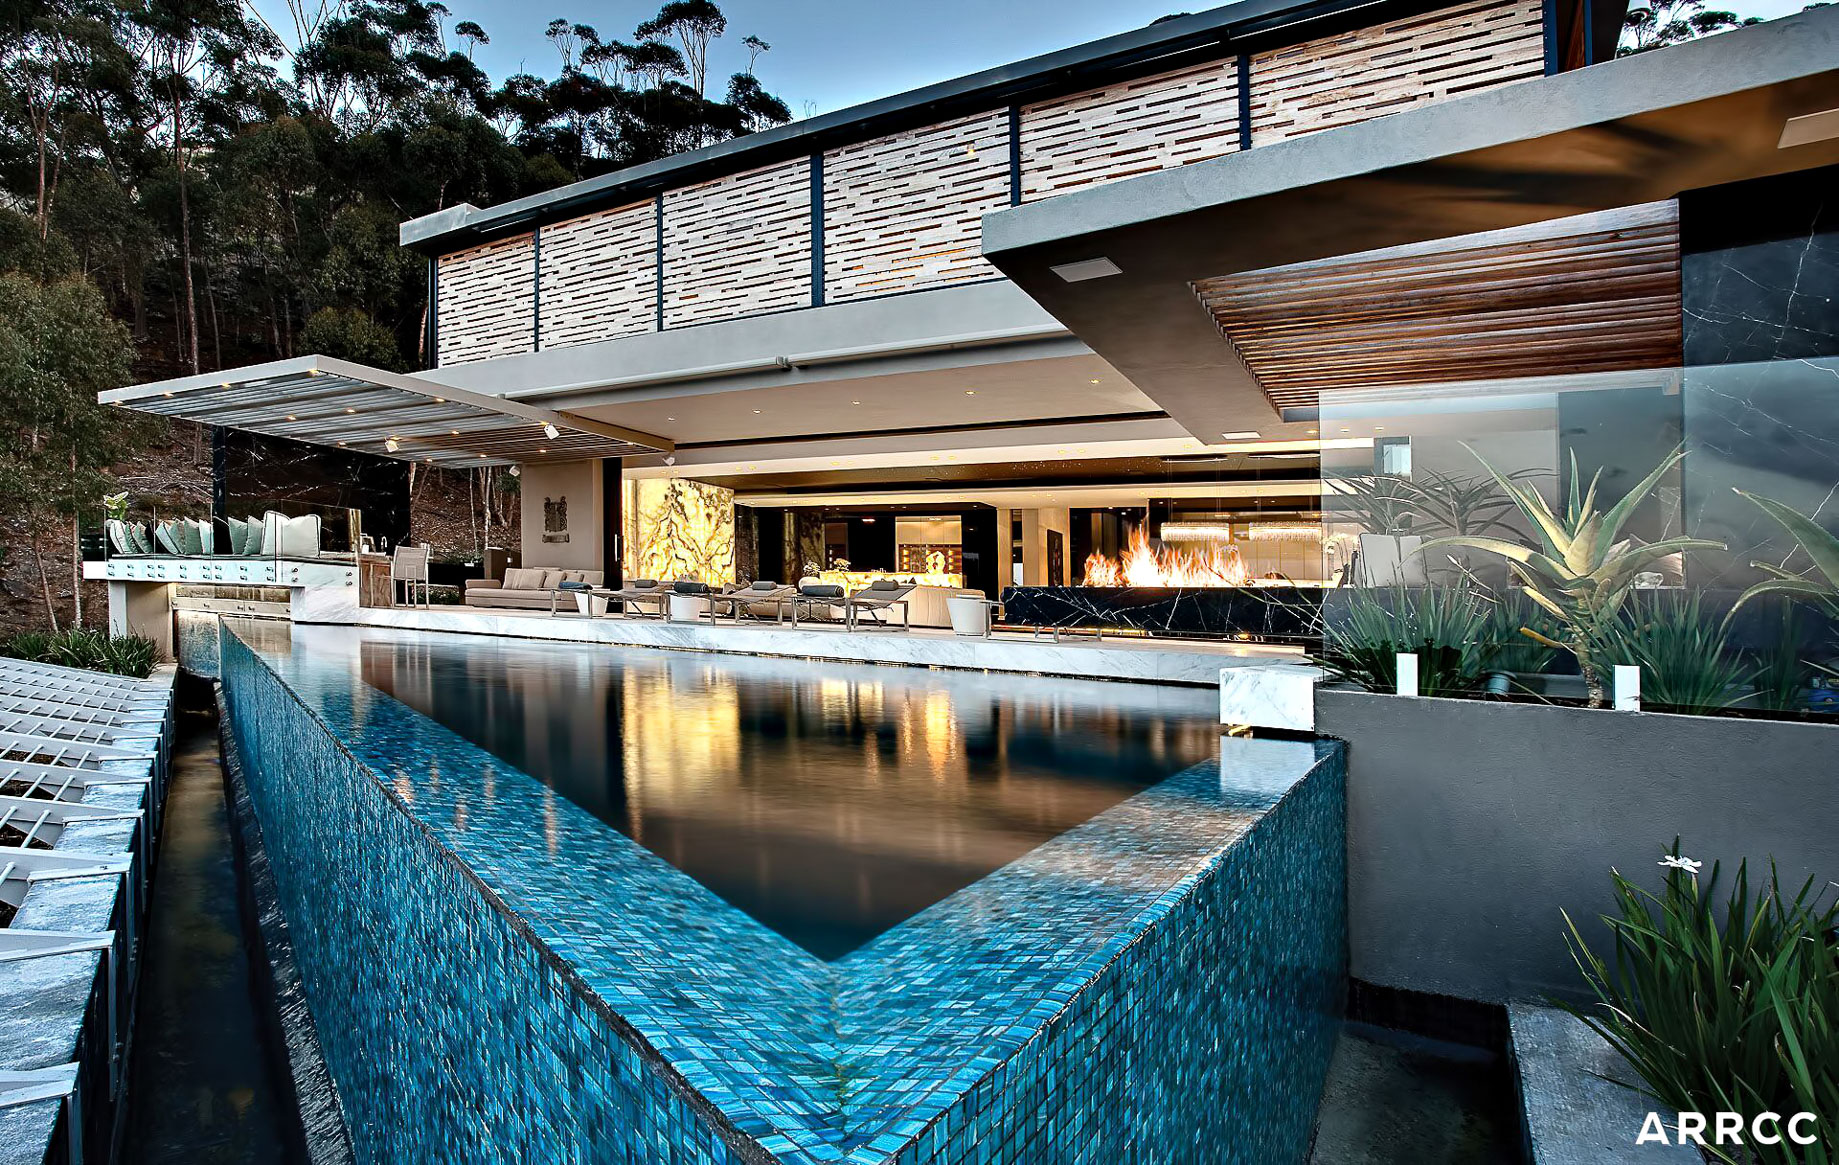 Head Road 1843 – Fresnaye, Cape Town, Western Cape, South Africa